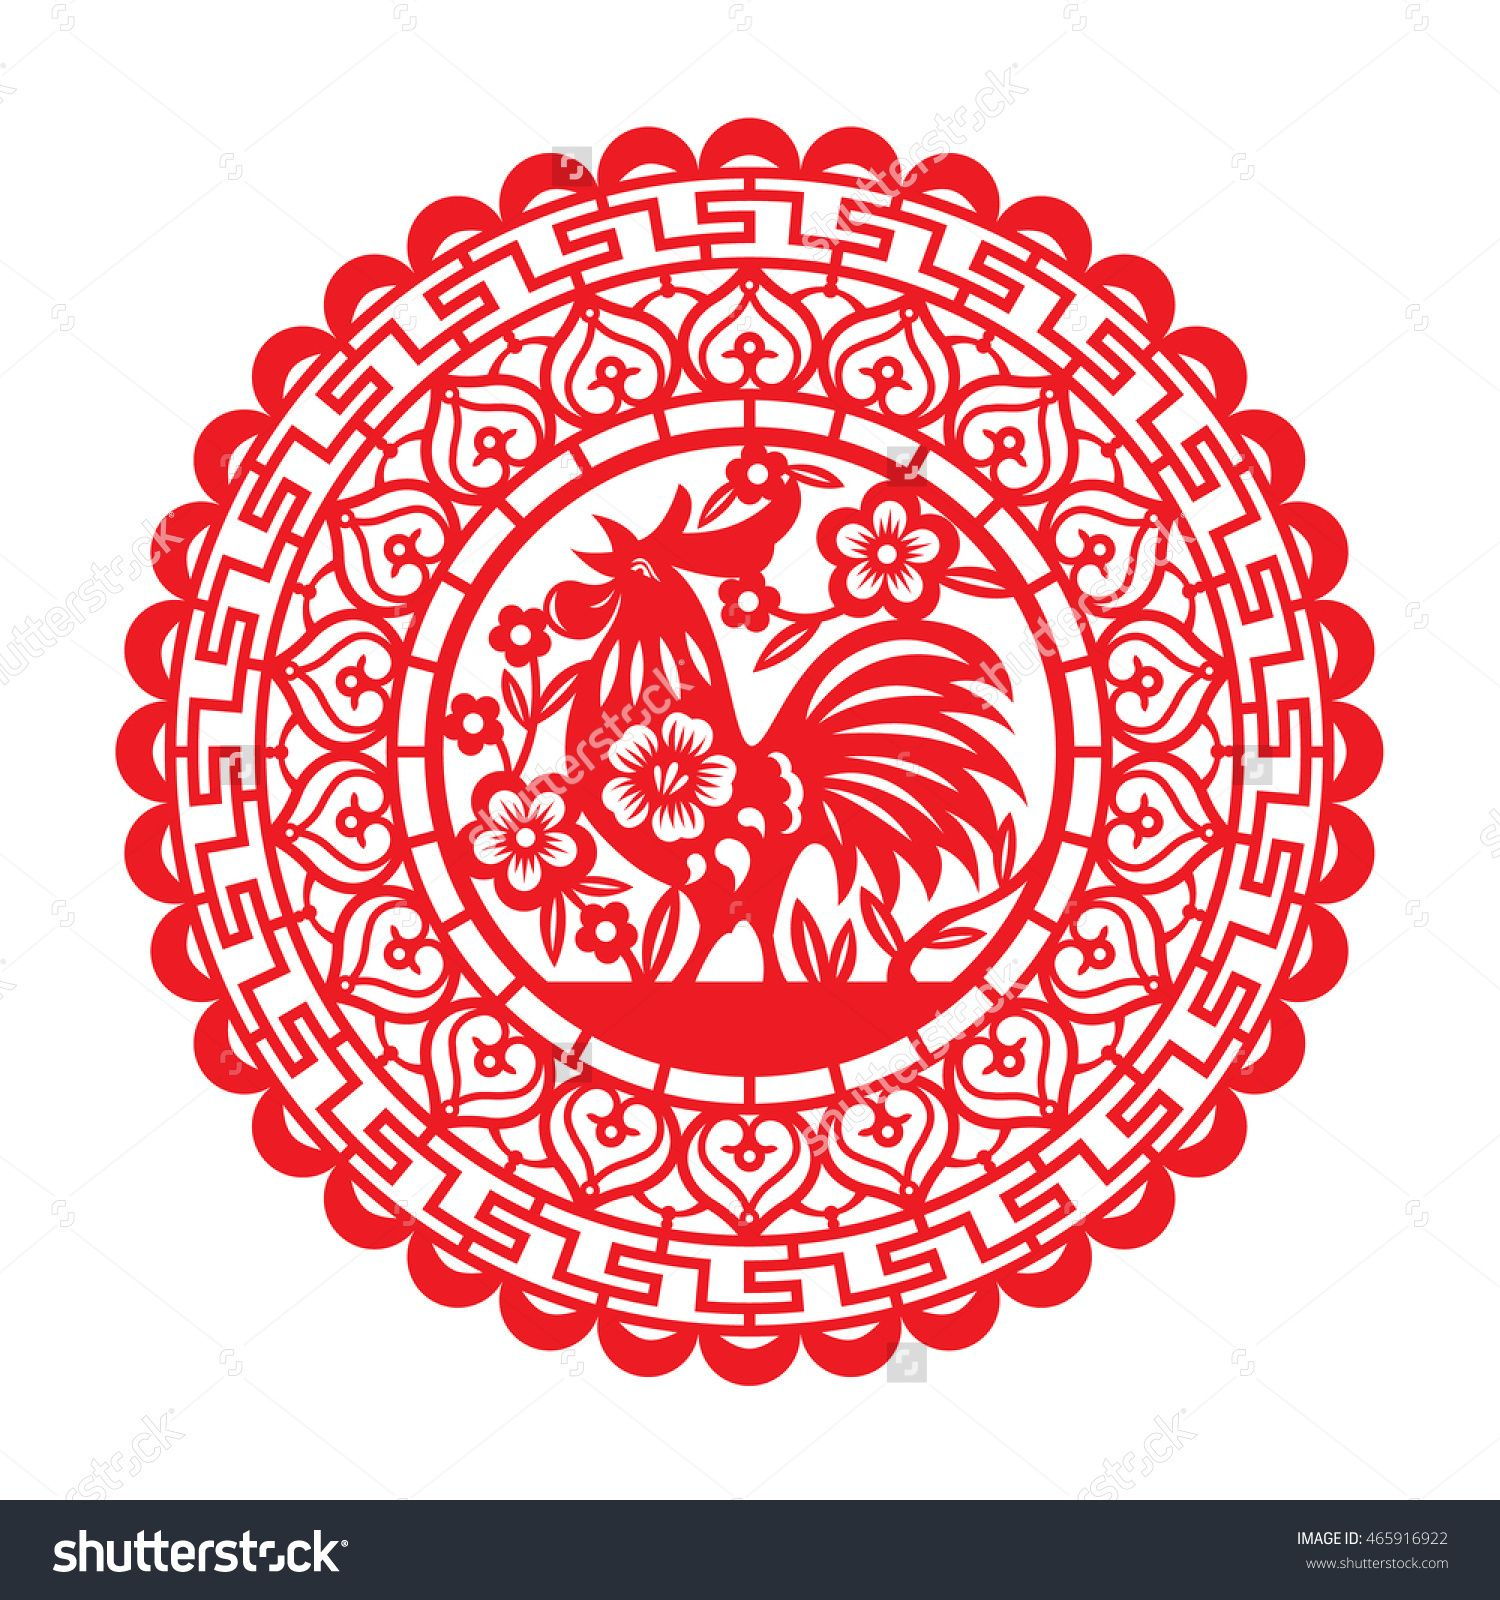 Red Paper Cut Chicken Rooster In Circle Zodiac Symbols For Chinese New Year Vector Art Design